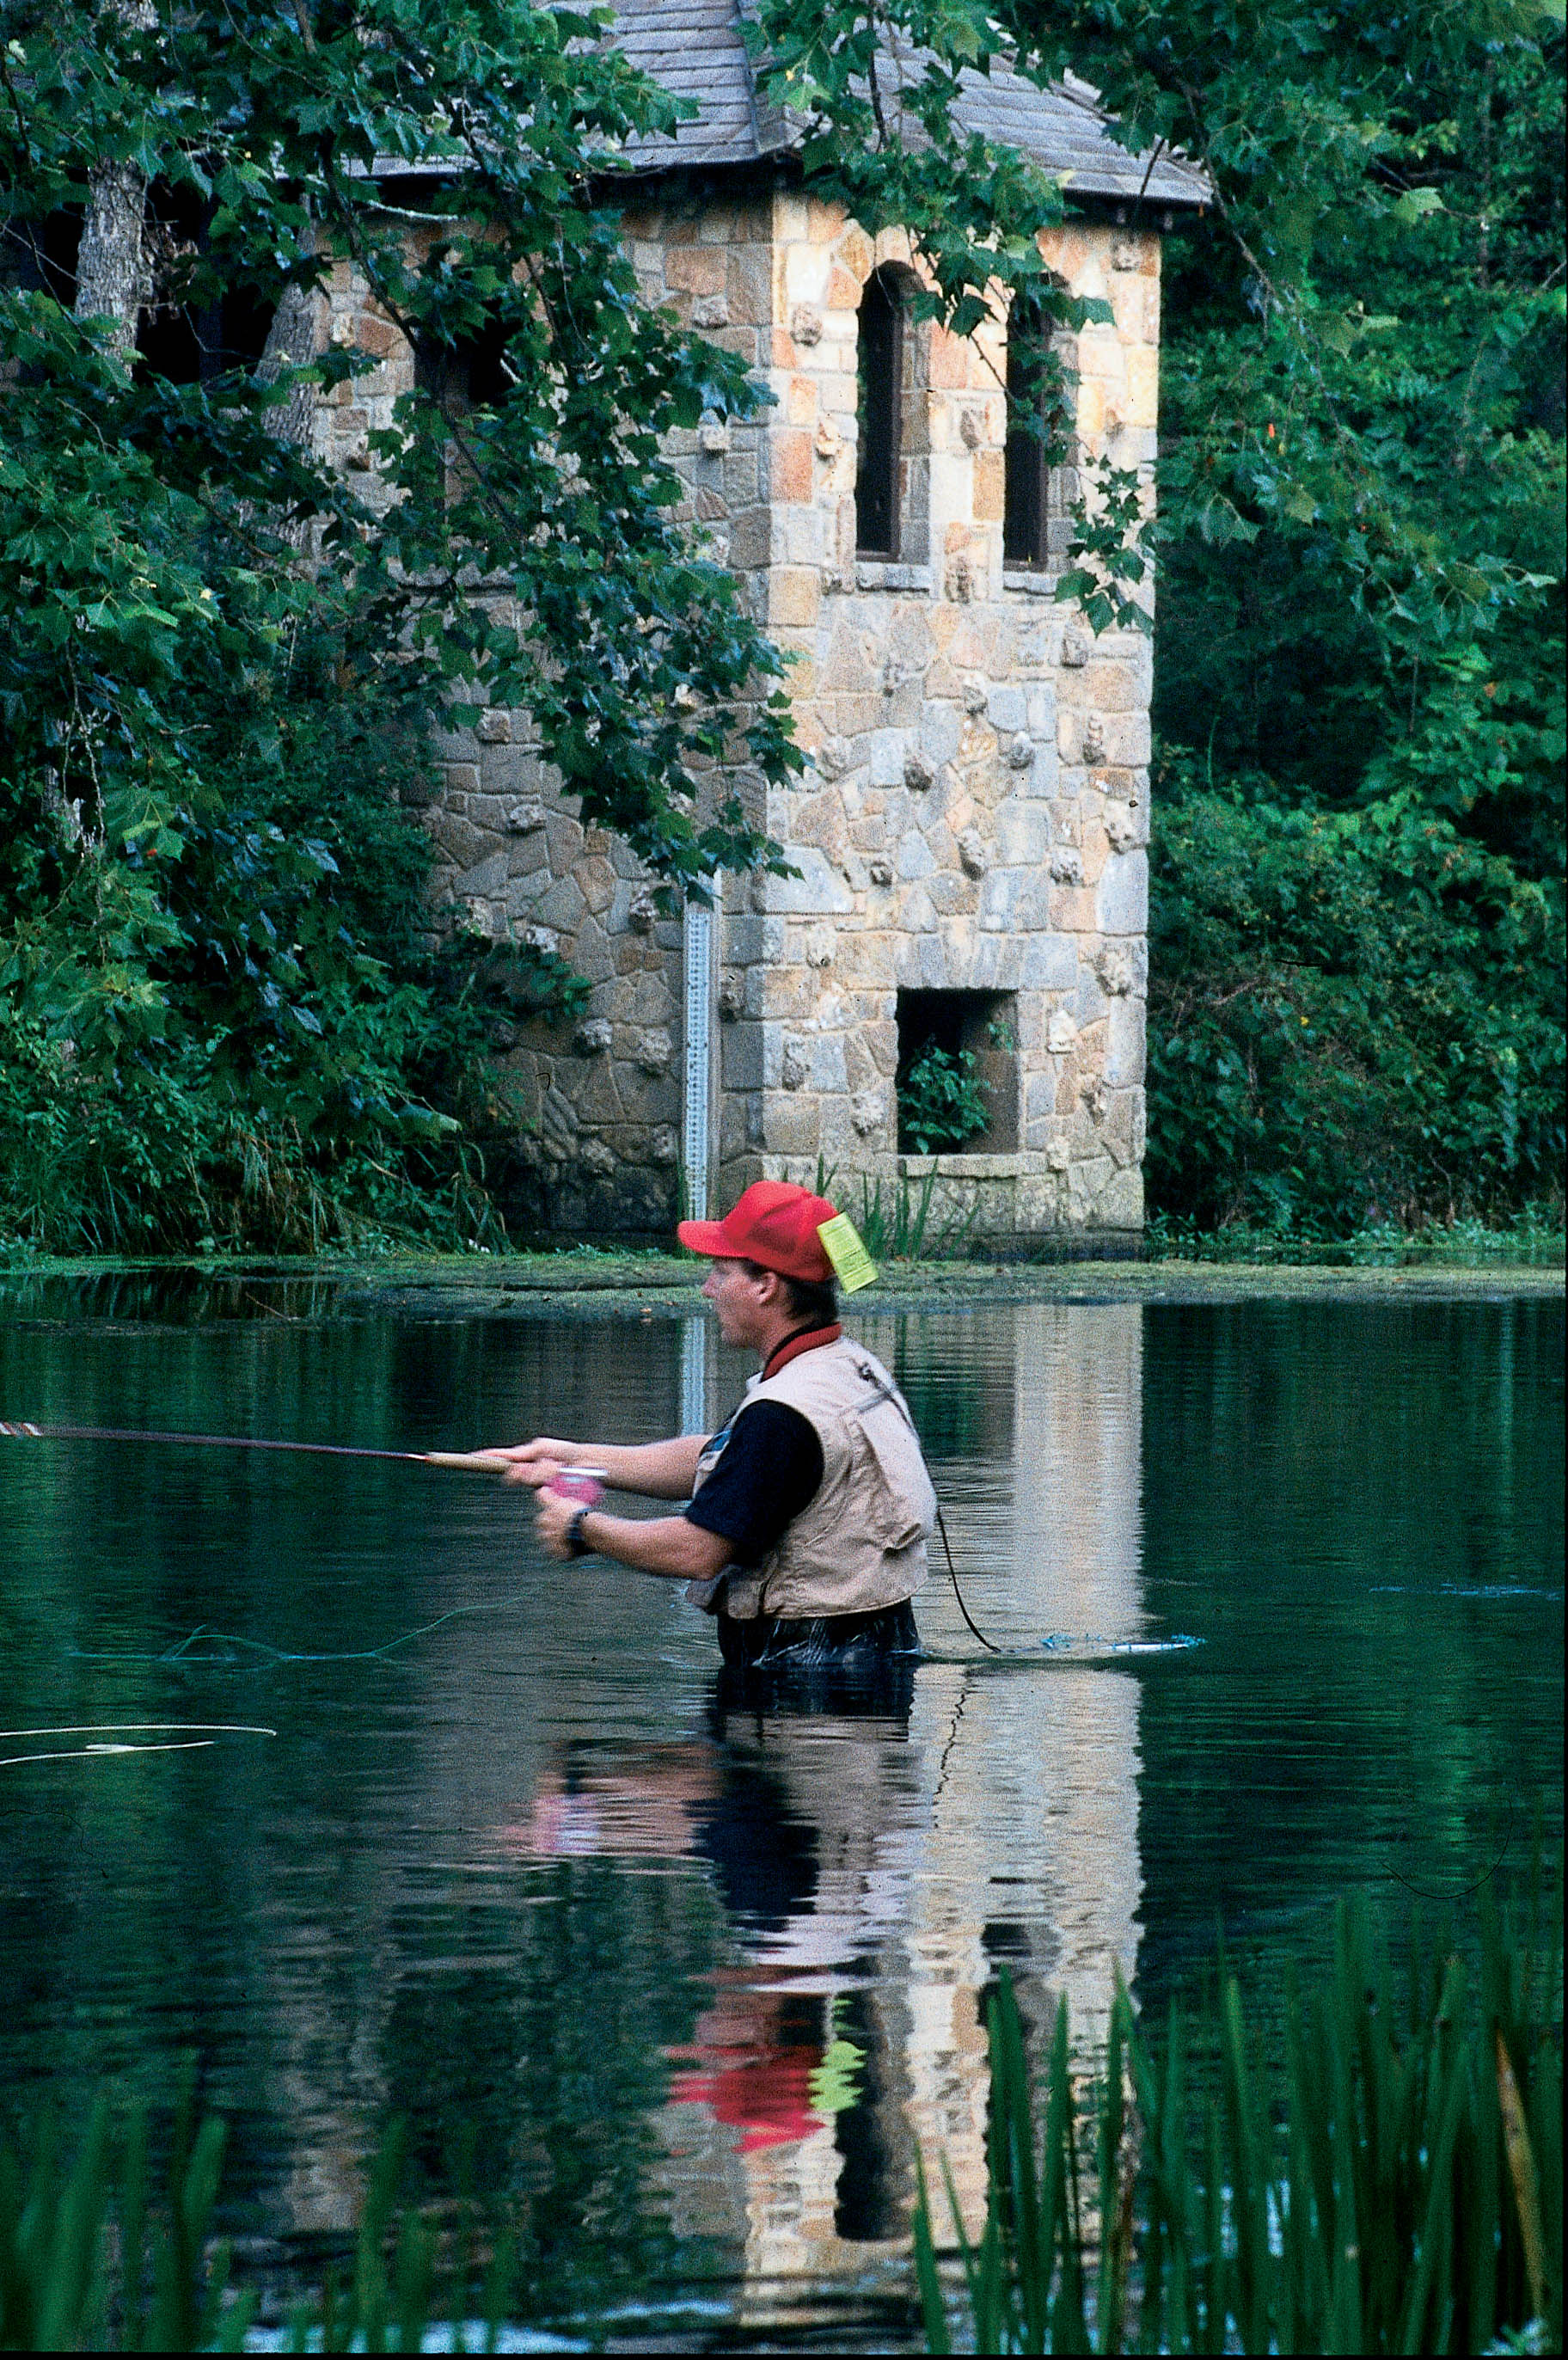 A man wading in the water fishing in front of one of the historic structures at Bennett Spring State Park